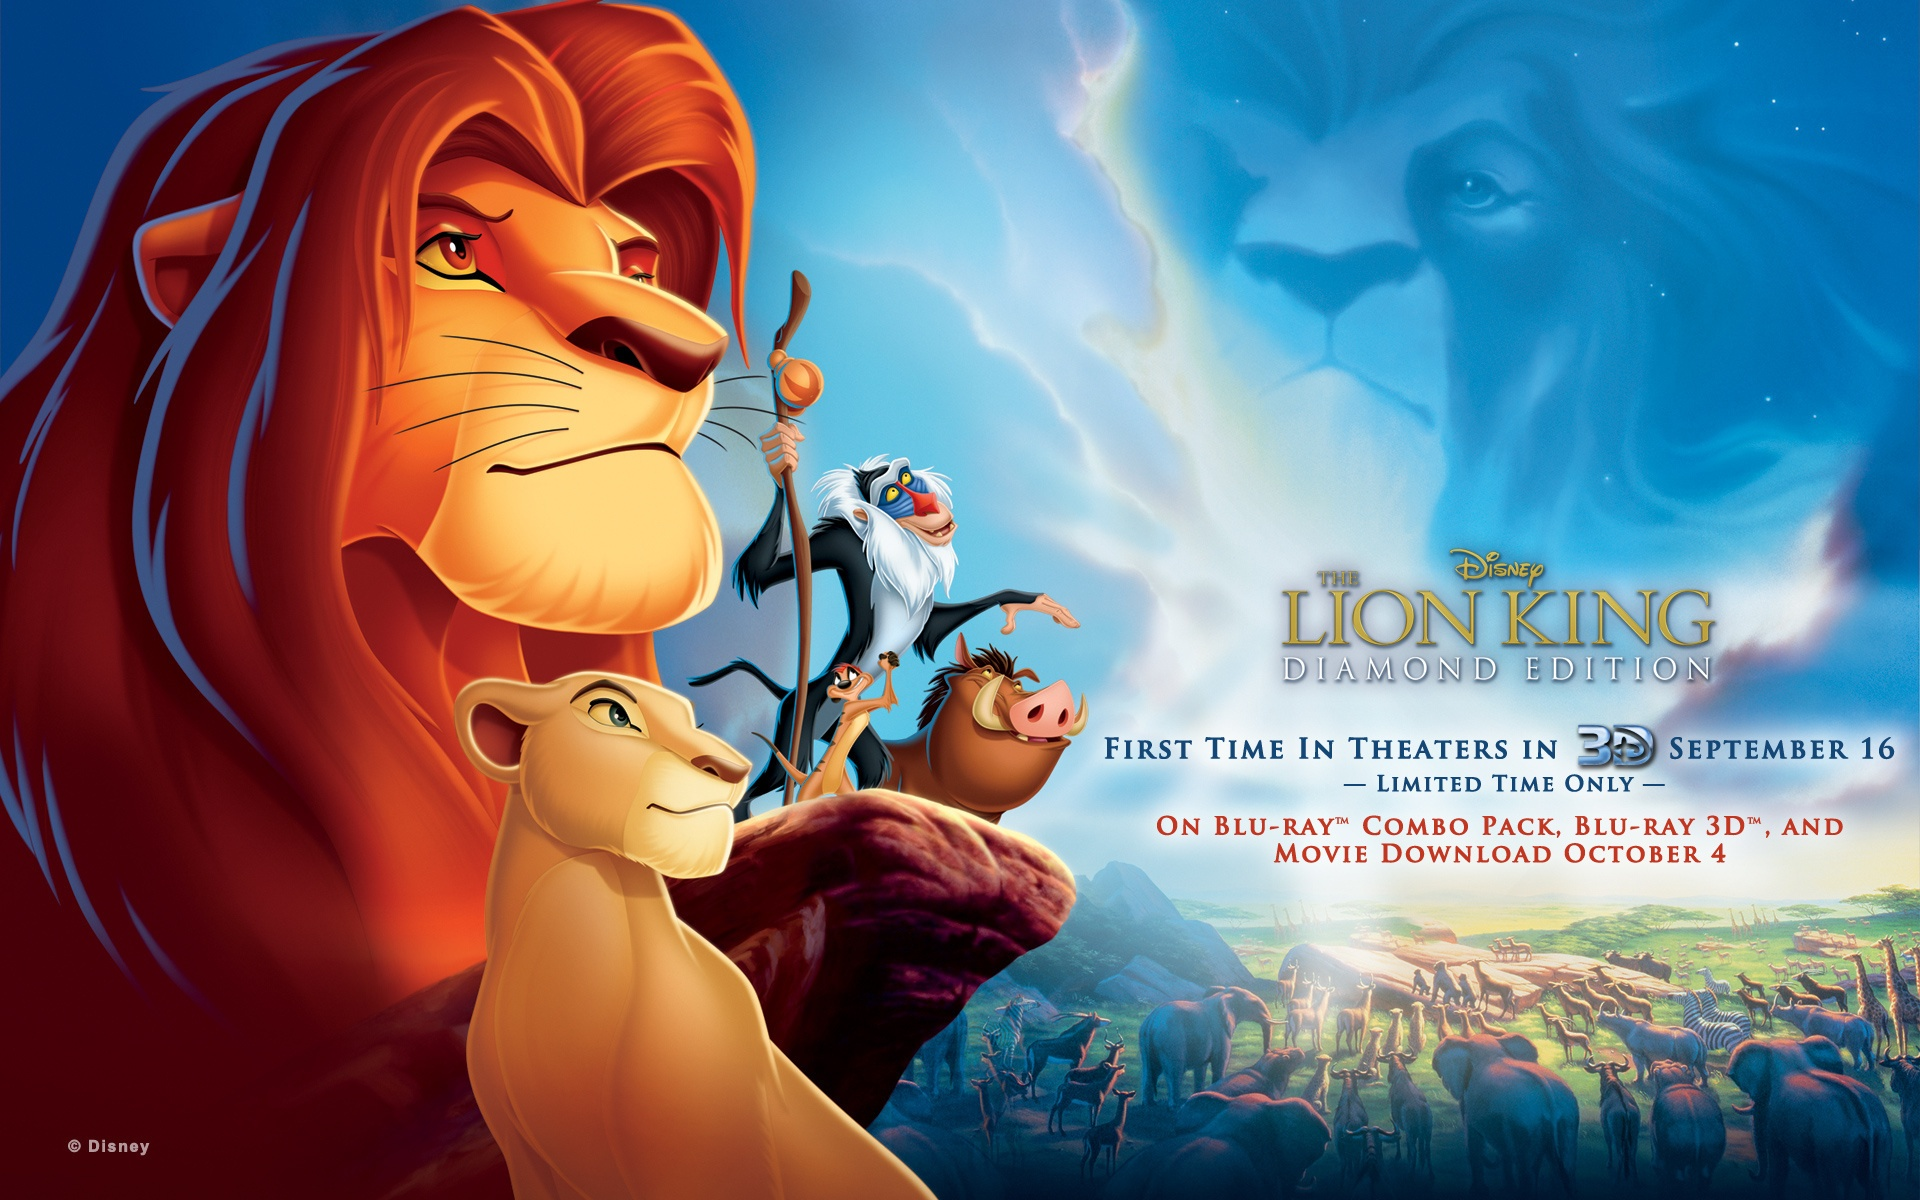 Wallpaper Disney Movie The Lion King 1920x1200 HD Picture Image